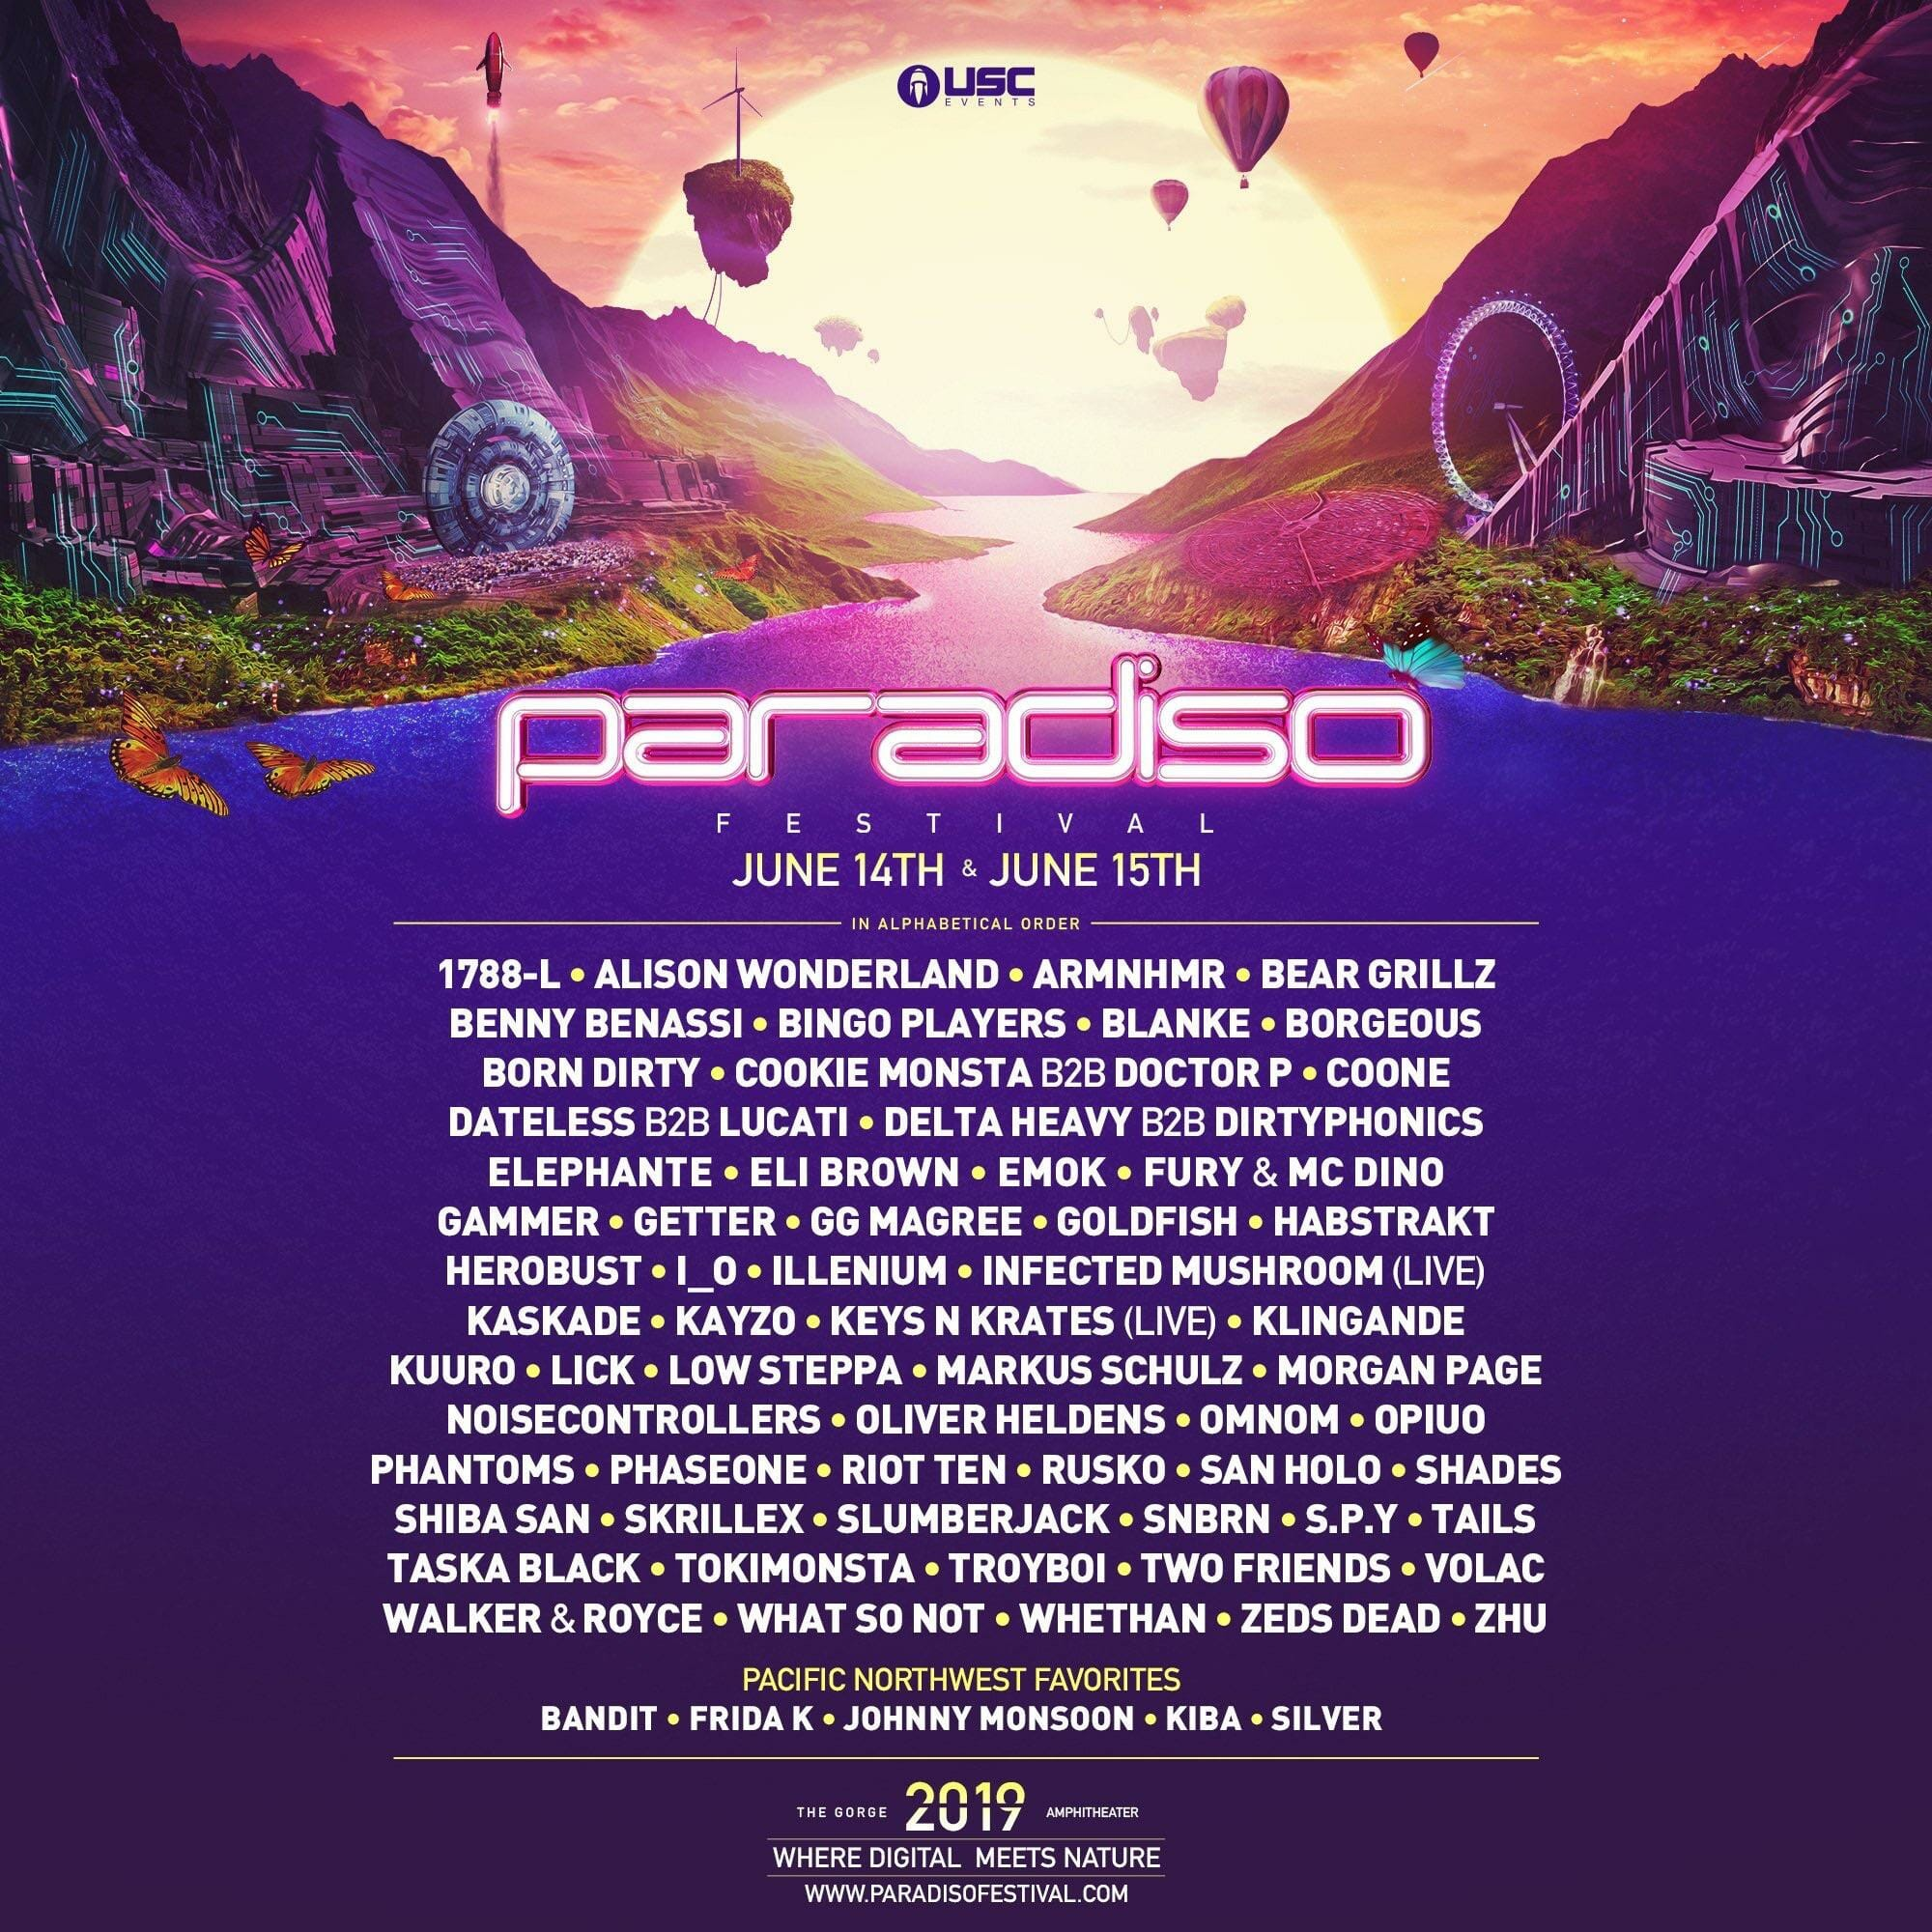 Paradiso announces stacked 2019 lineup featuring Skrillex, Kaskade, Alison Wonderland, Zeds Dead, and moreParadiso 2019